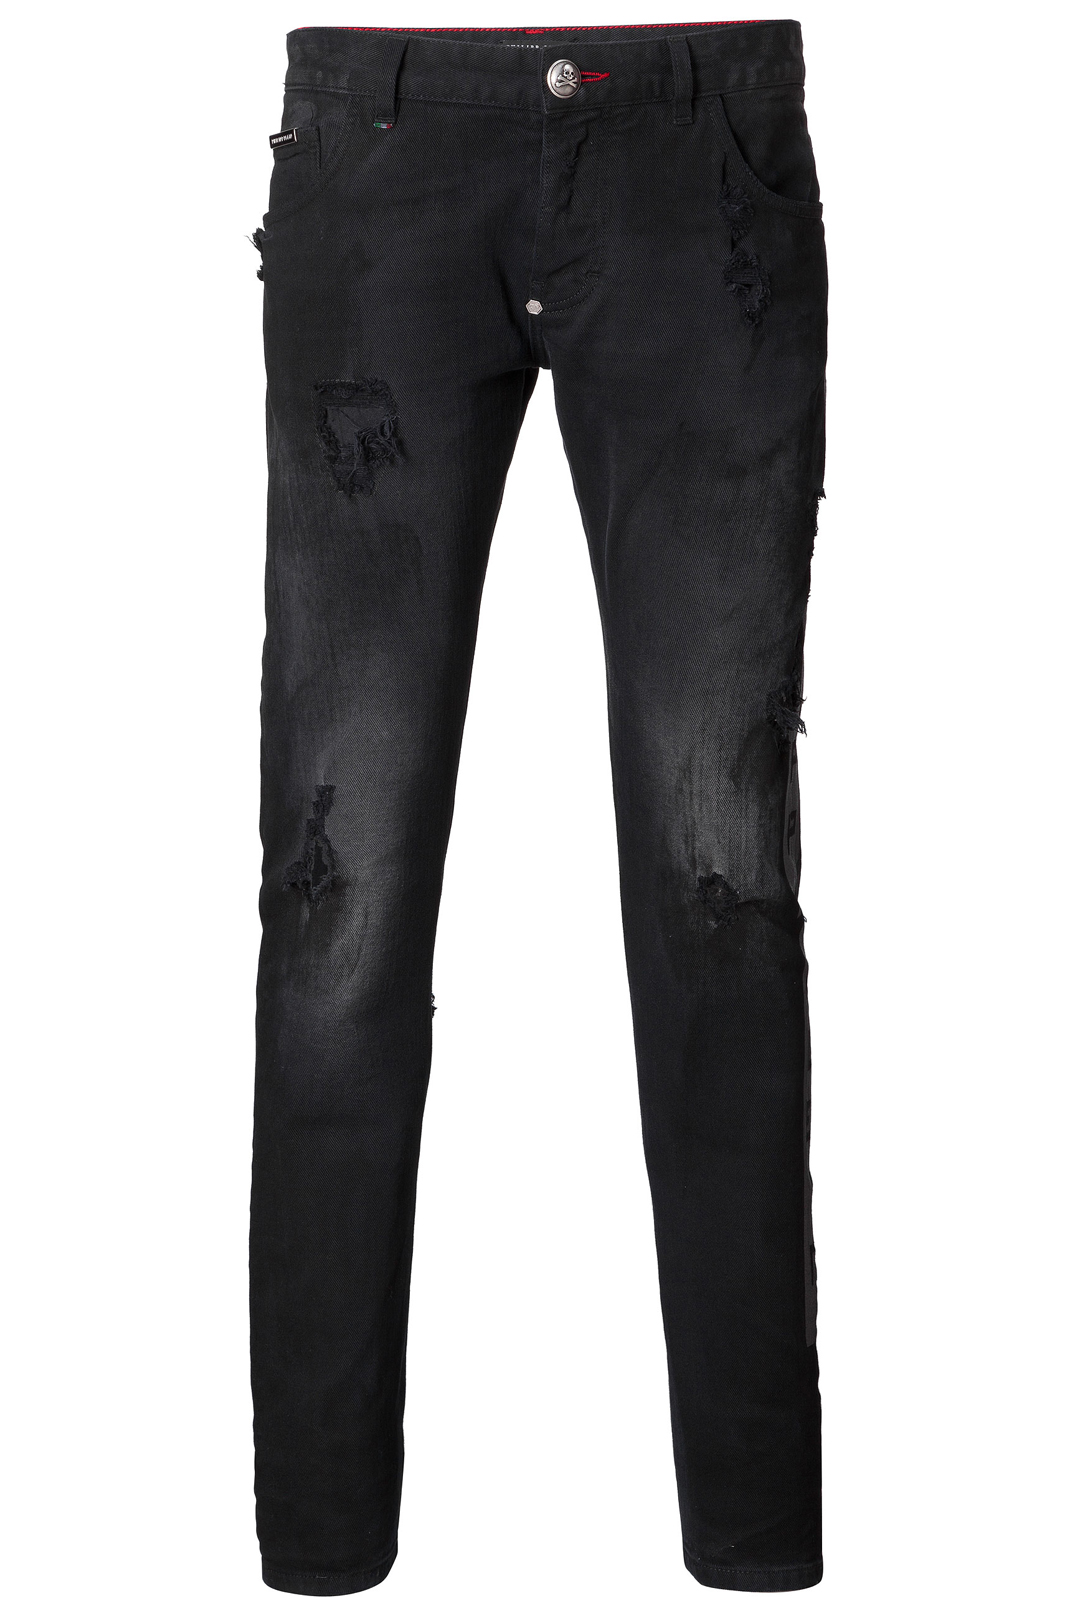 Jeans  Philipp plein F17C MDT0415 JOROGUMU 02ON ONI